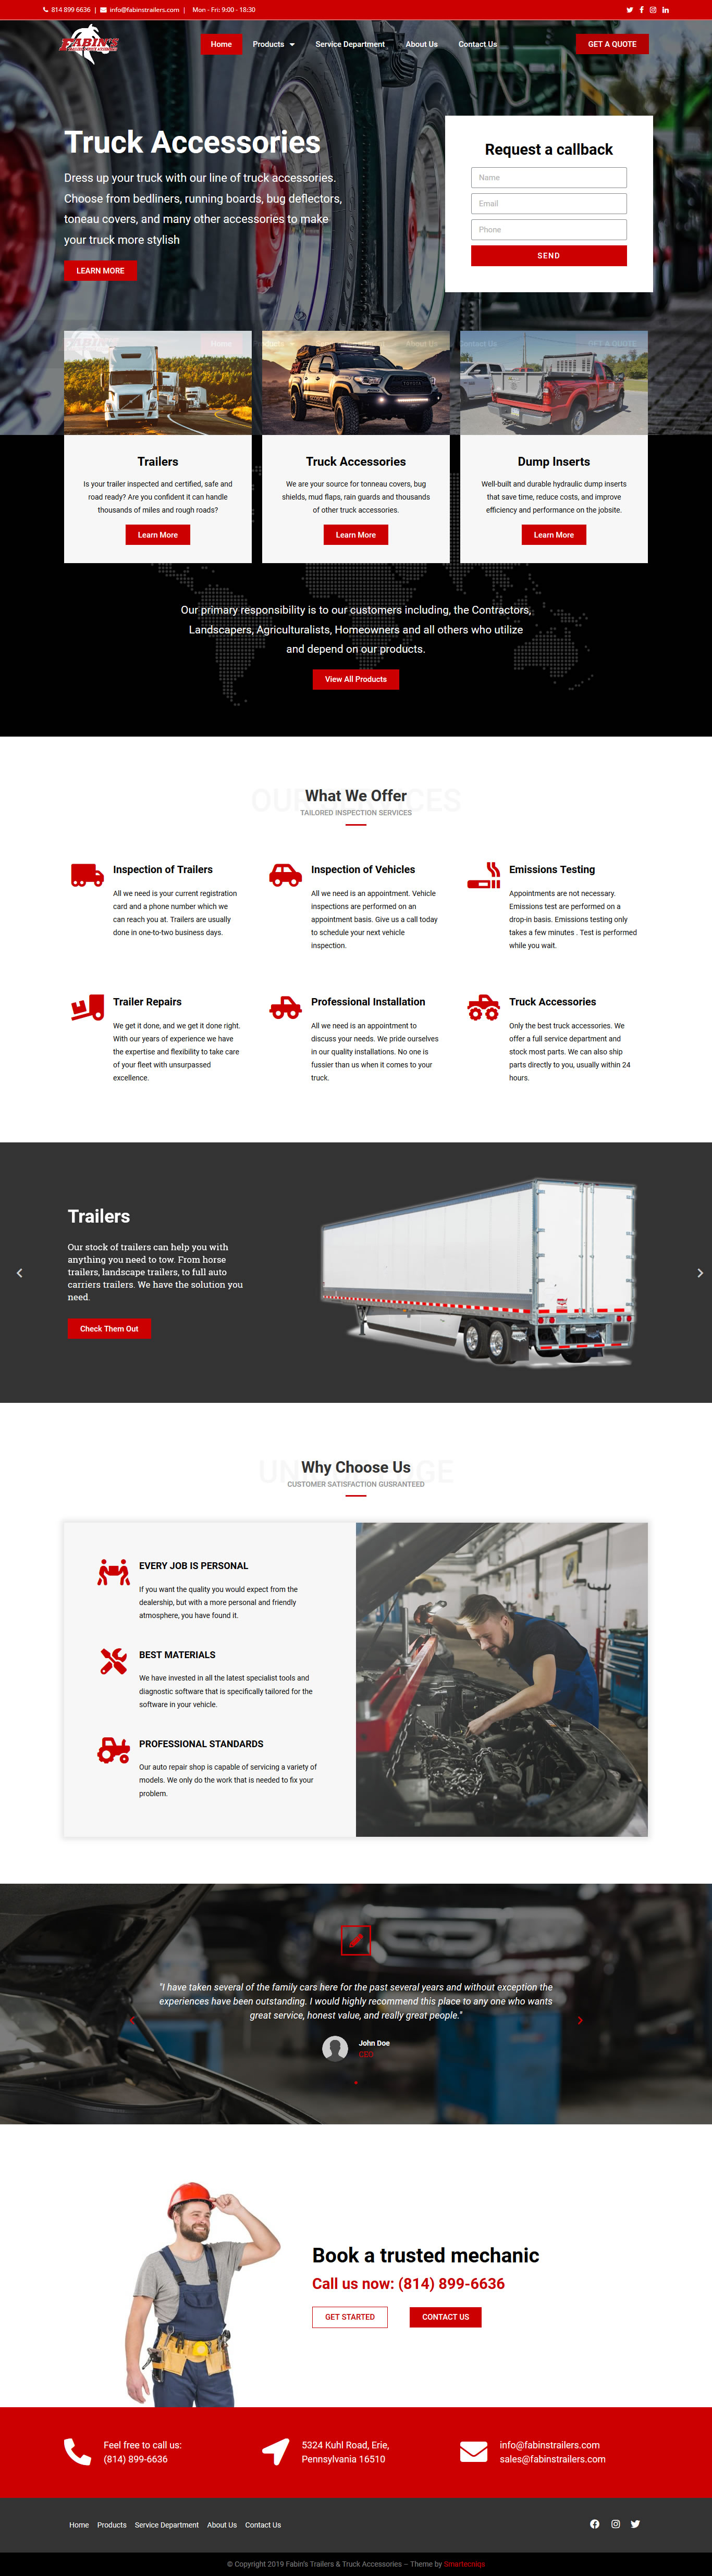 Fabins Trailers New Website Home Page